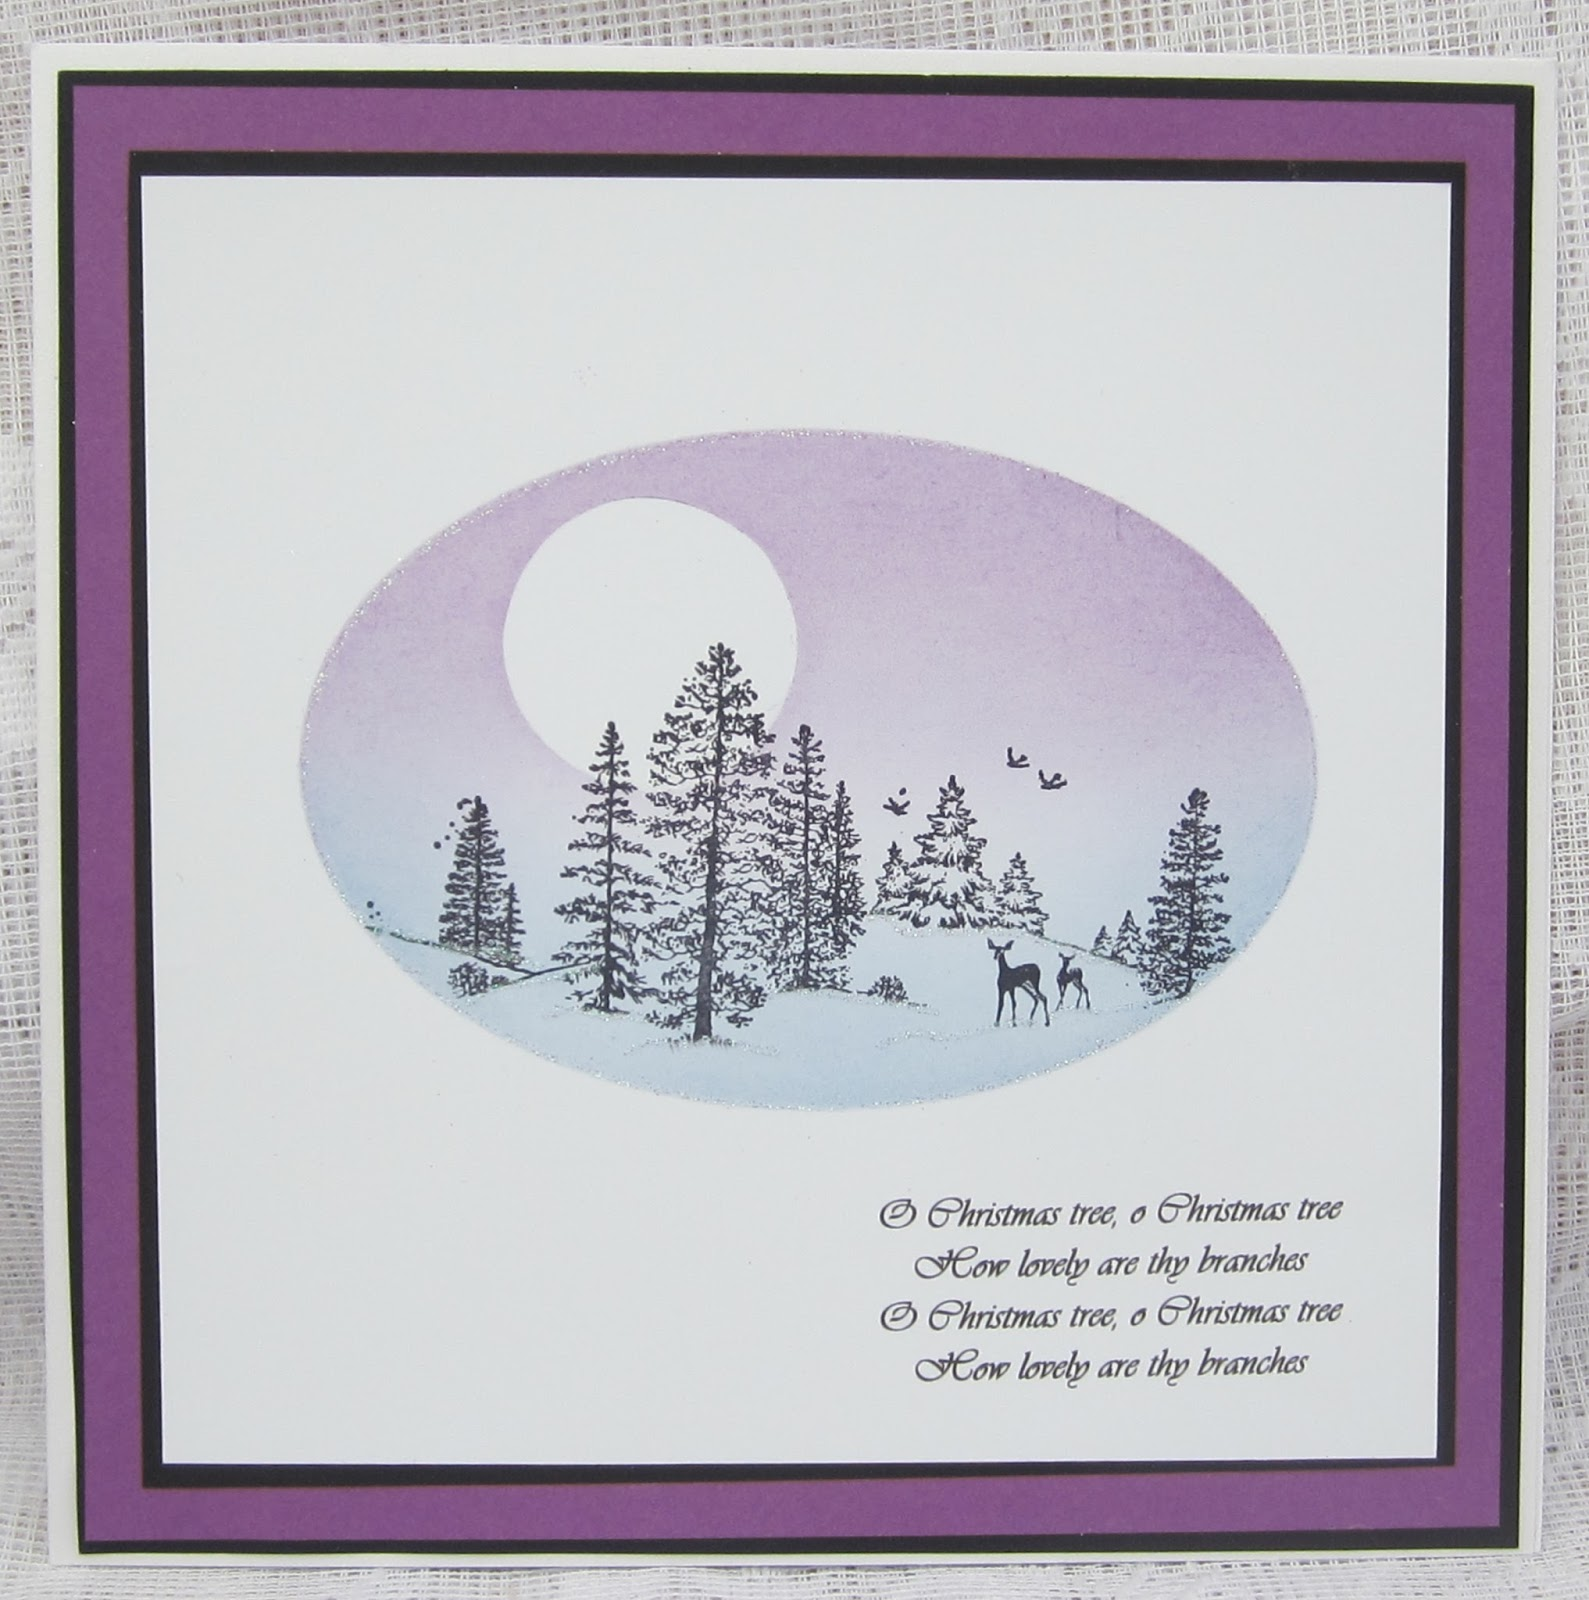 O Christmas Tree How Lovely Are Your Branches Lyrics - rjmovers.com